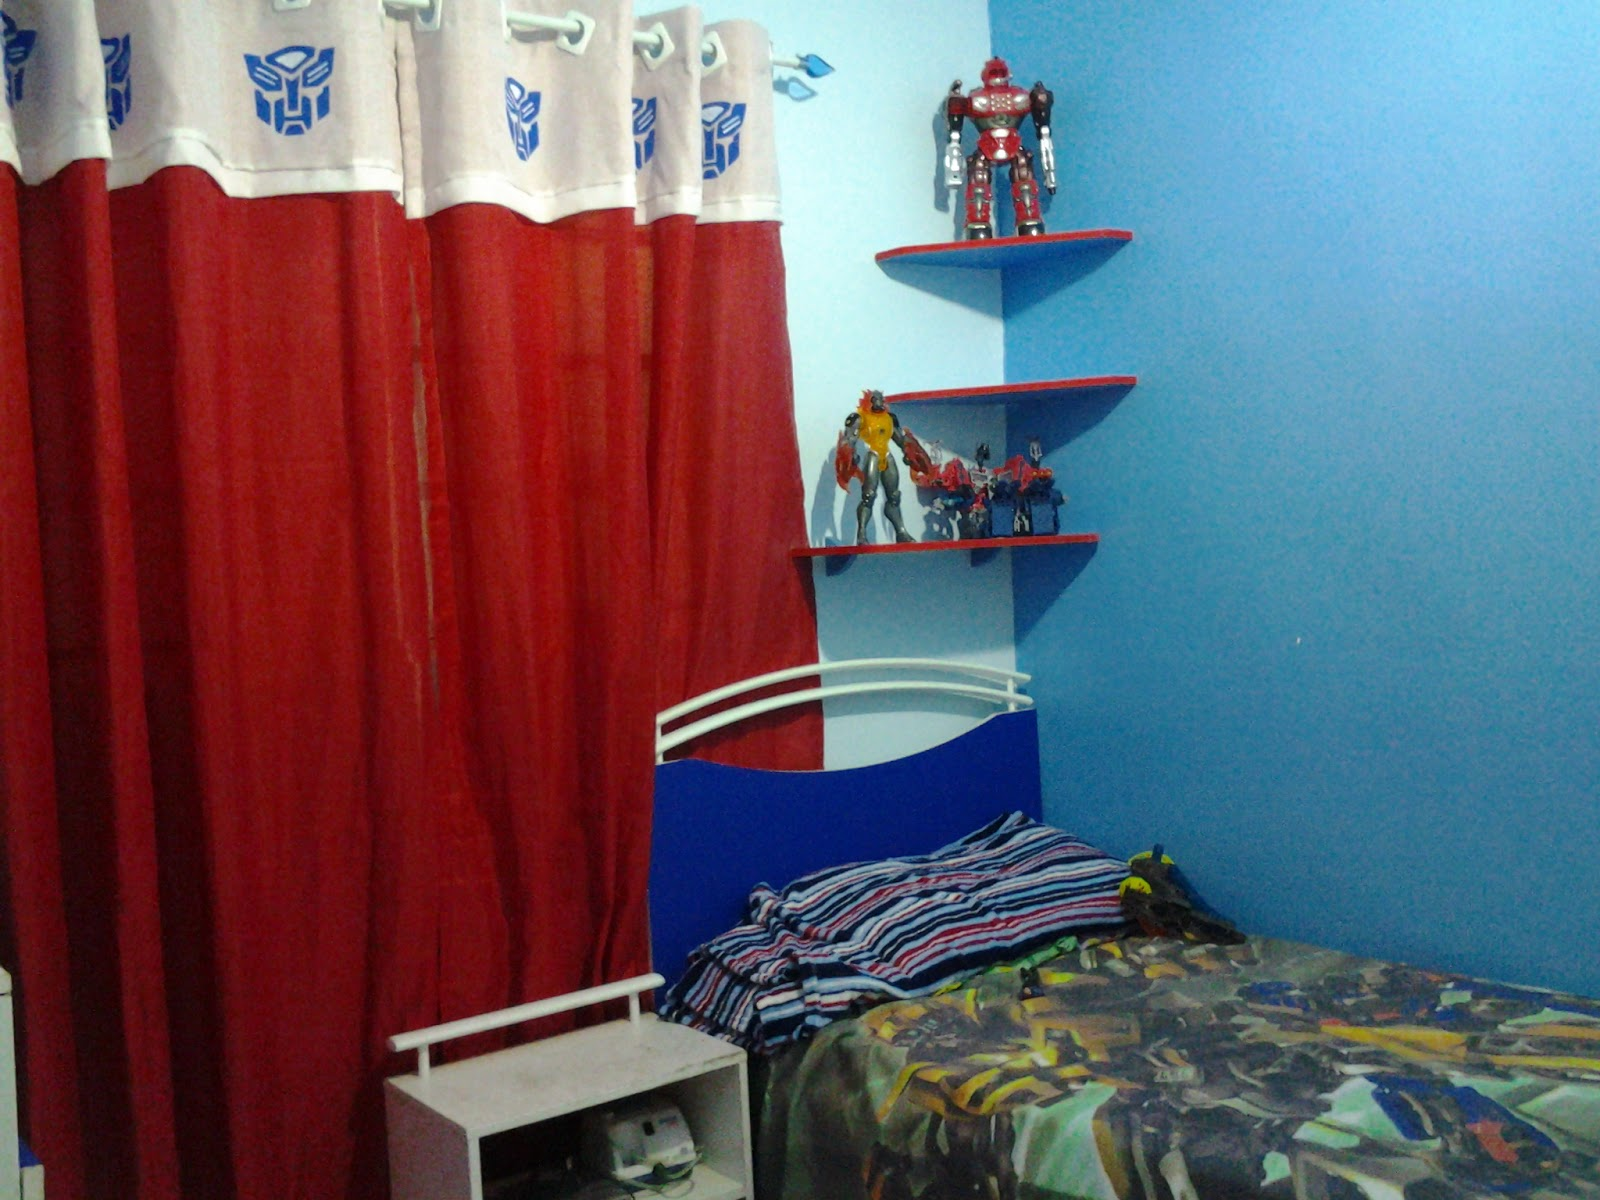 Bell 39 arts transformando o quarto do murilo transformers prime - Transformers tapete ...